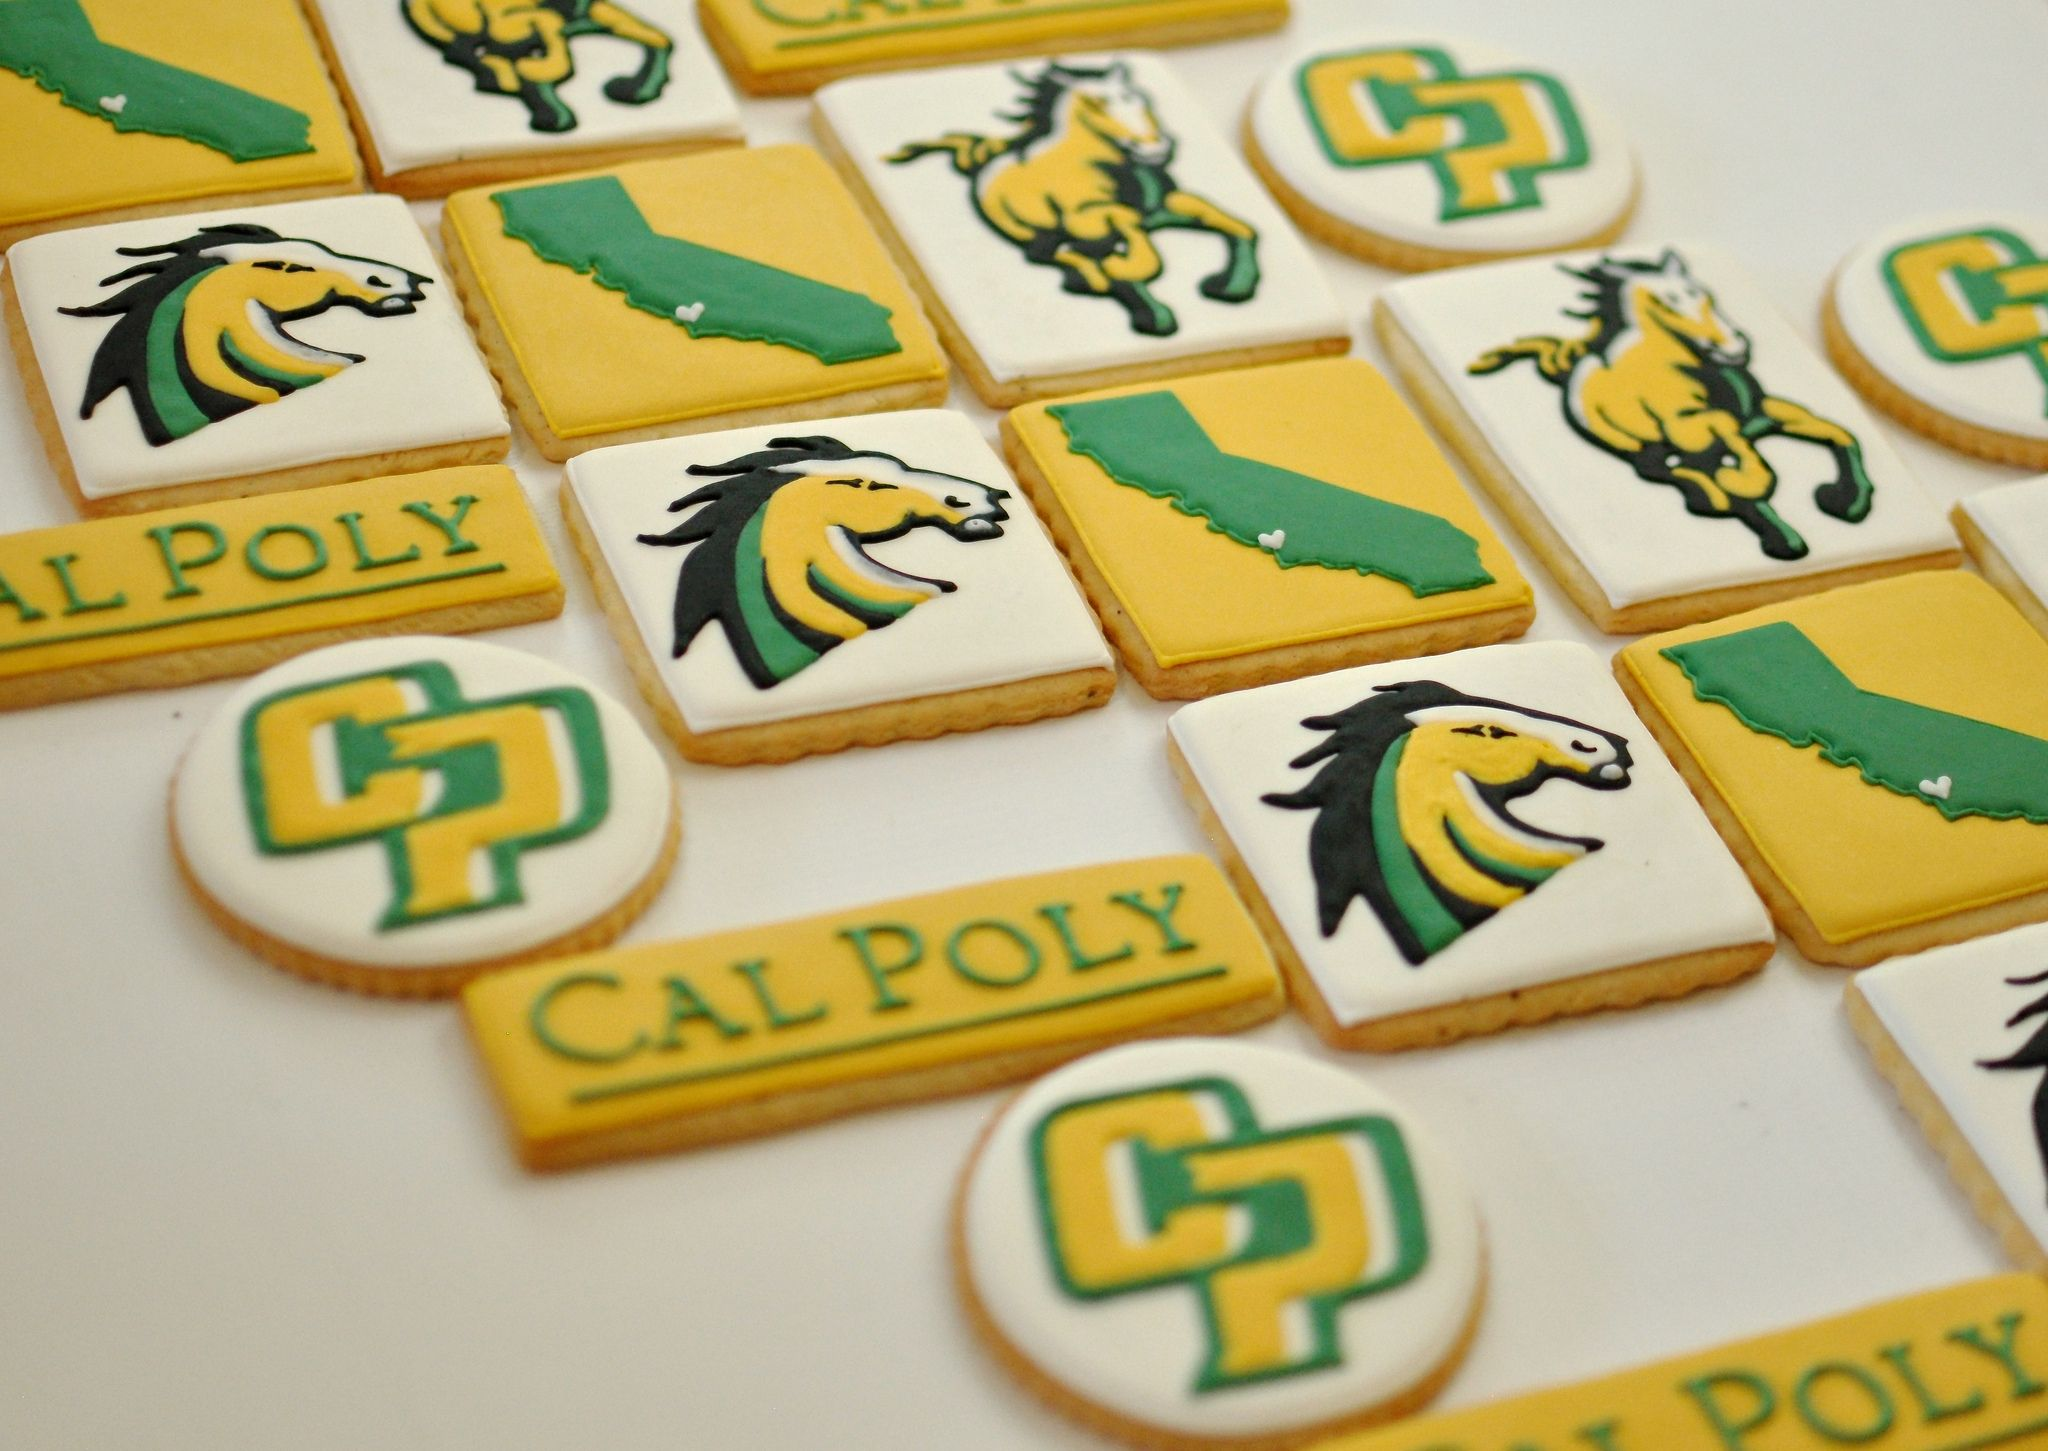 Cali Poly Pomona Cookies Brunch Table Setting Cookies Brunch Table